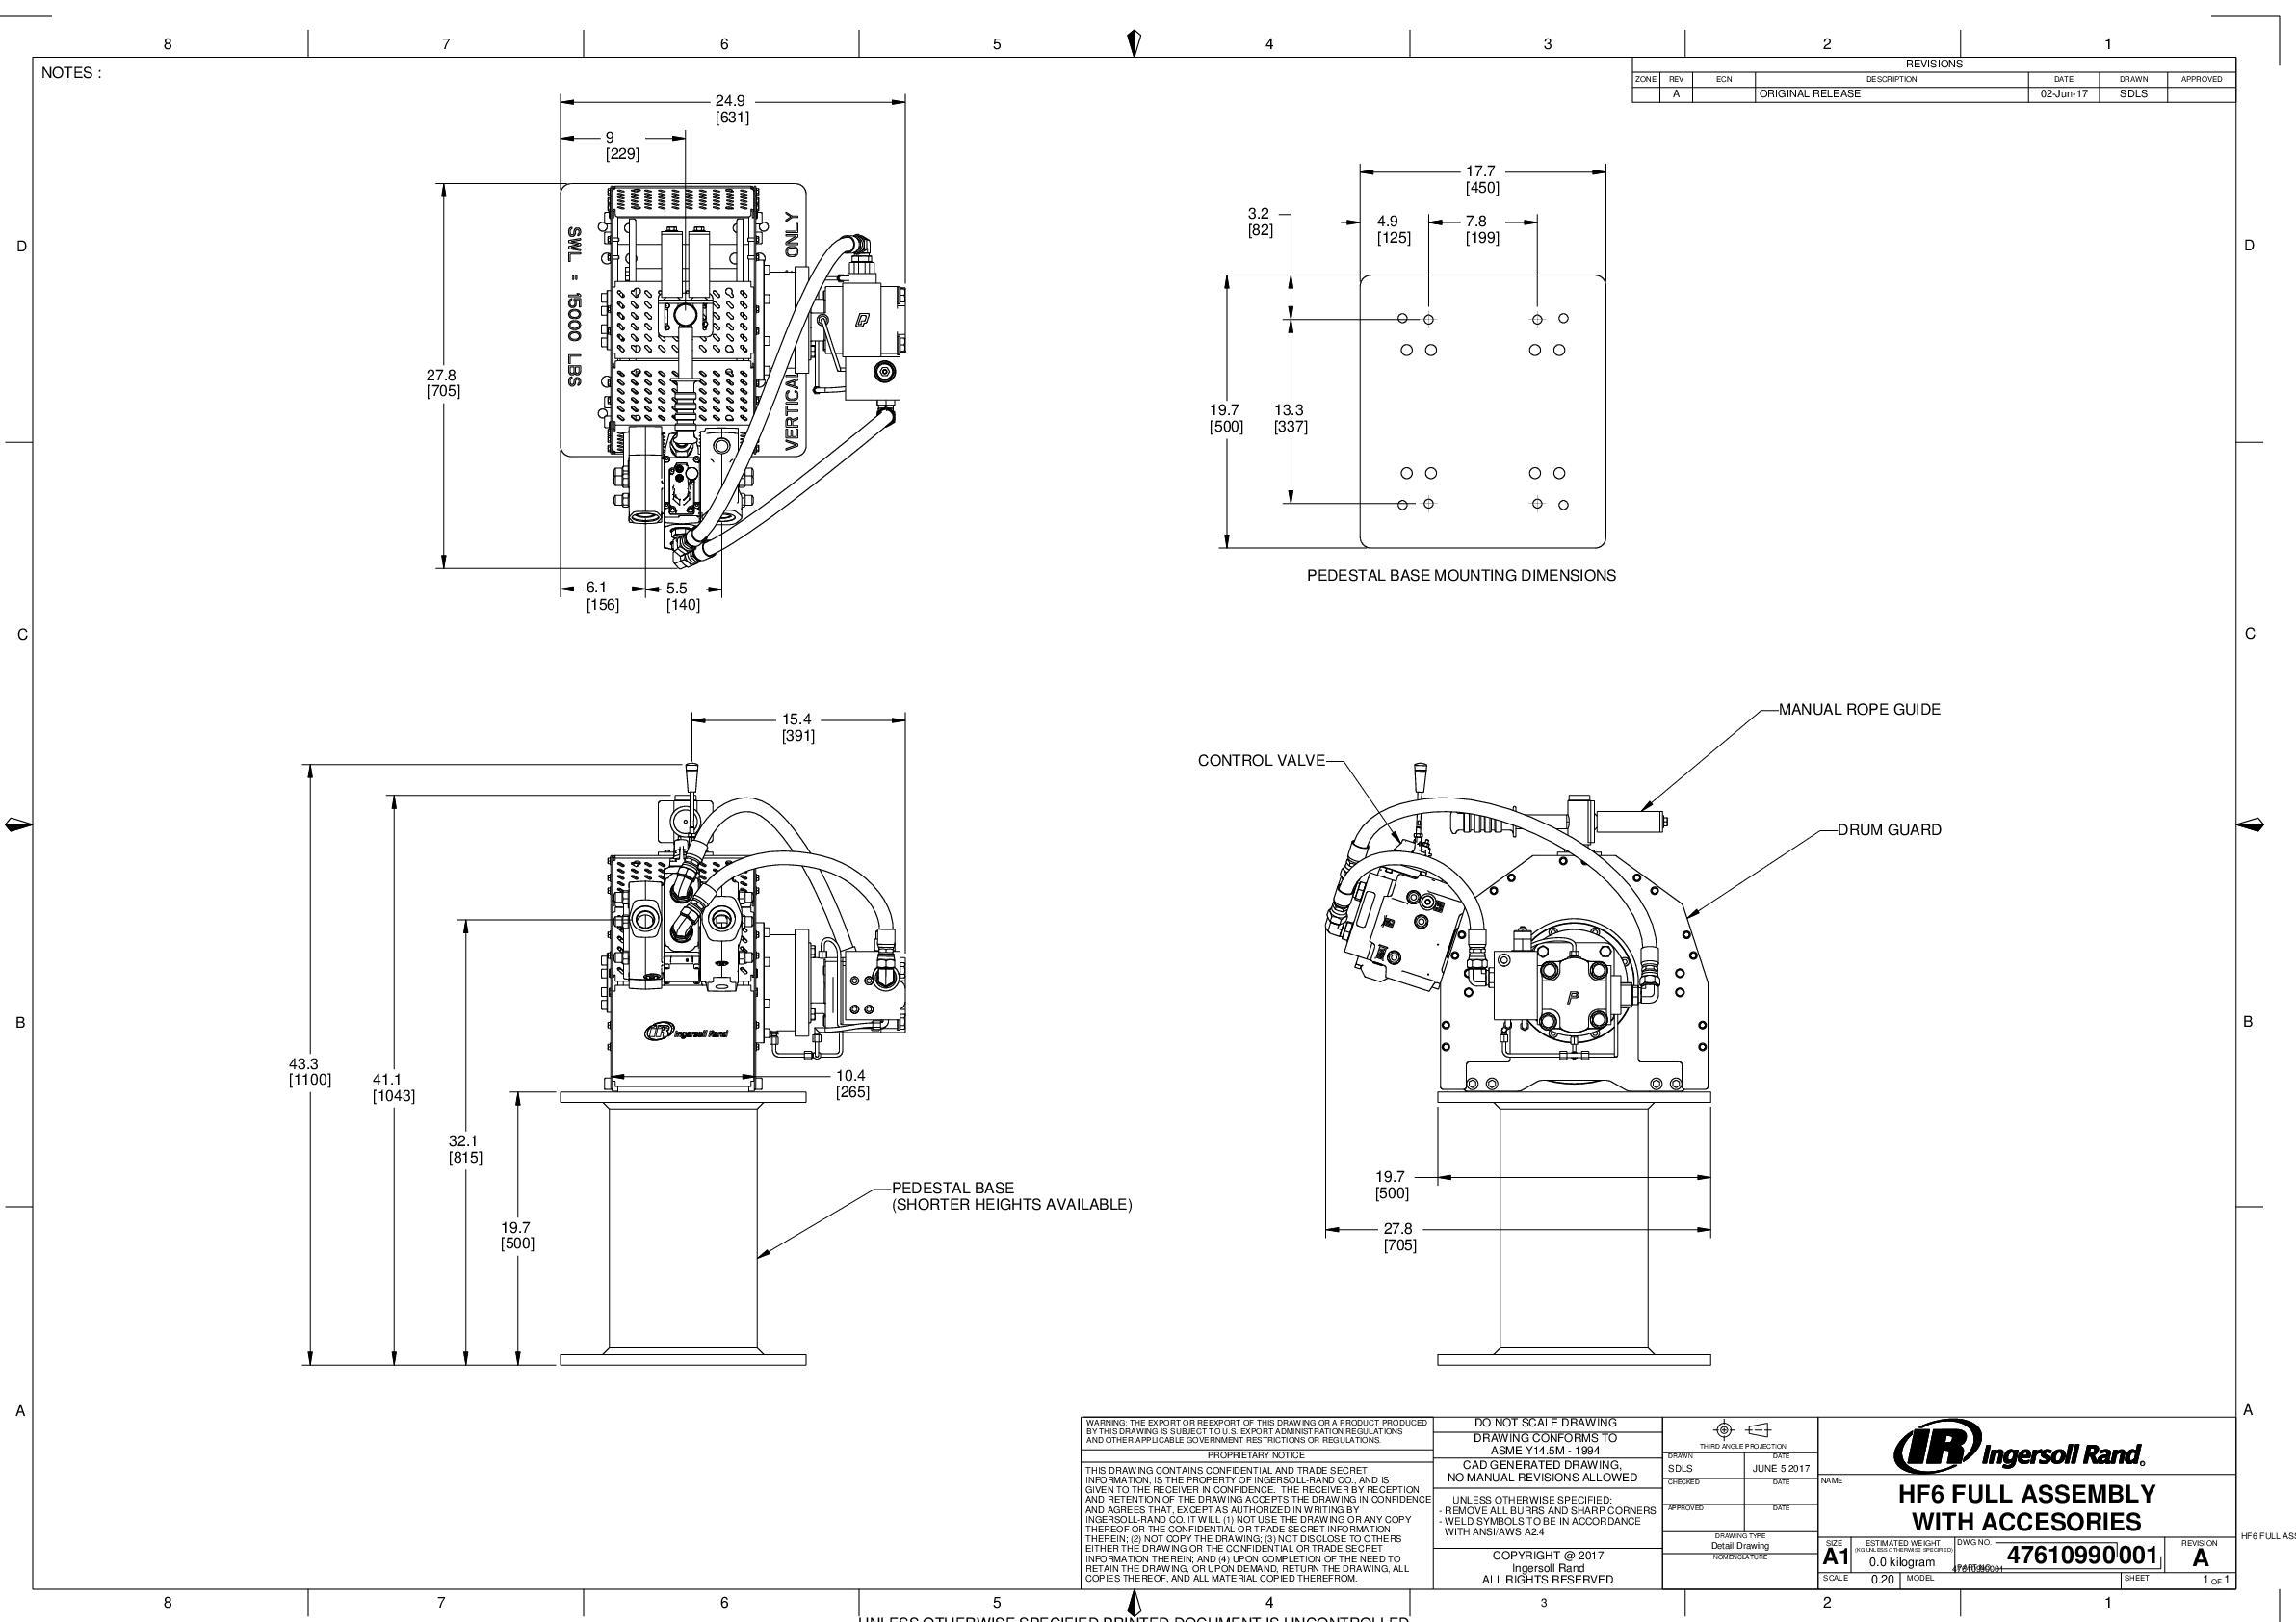 HF6 Winch Full Assembly With Accessories  drawing